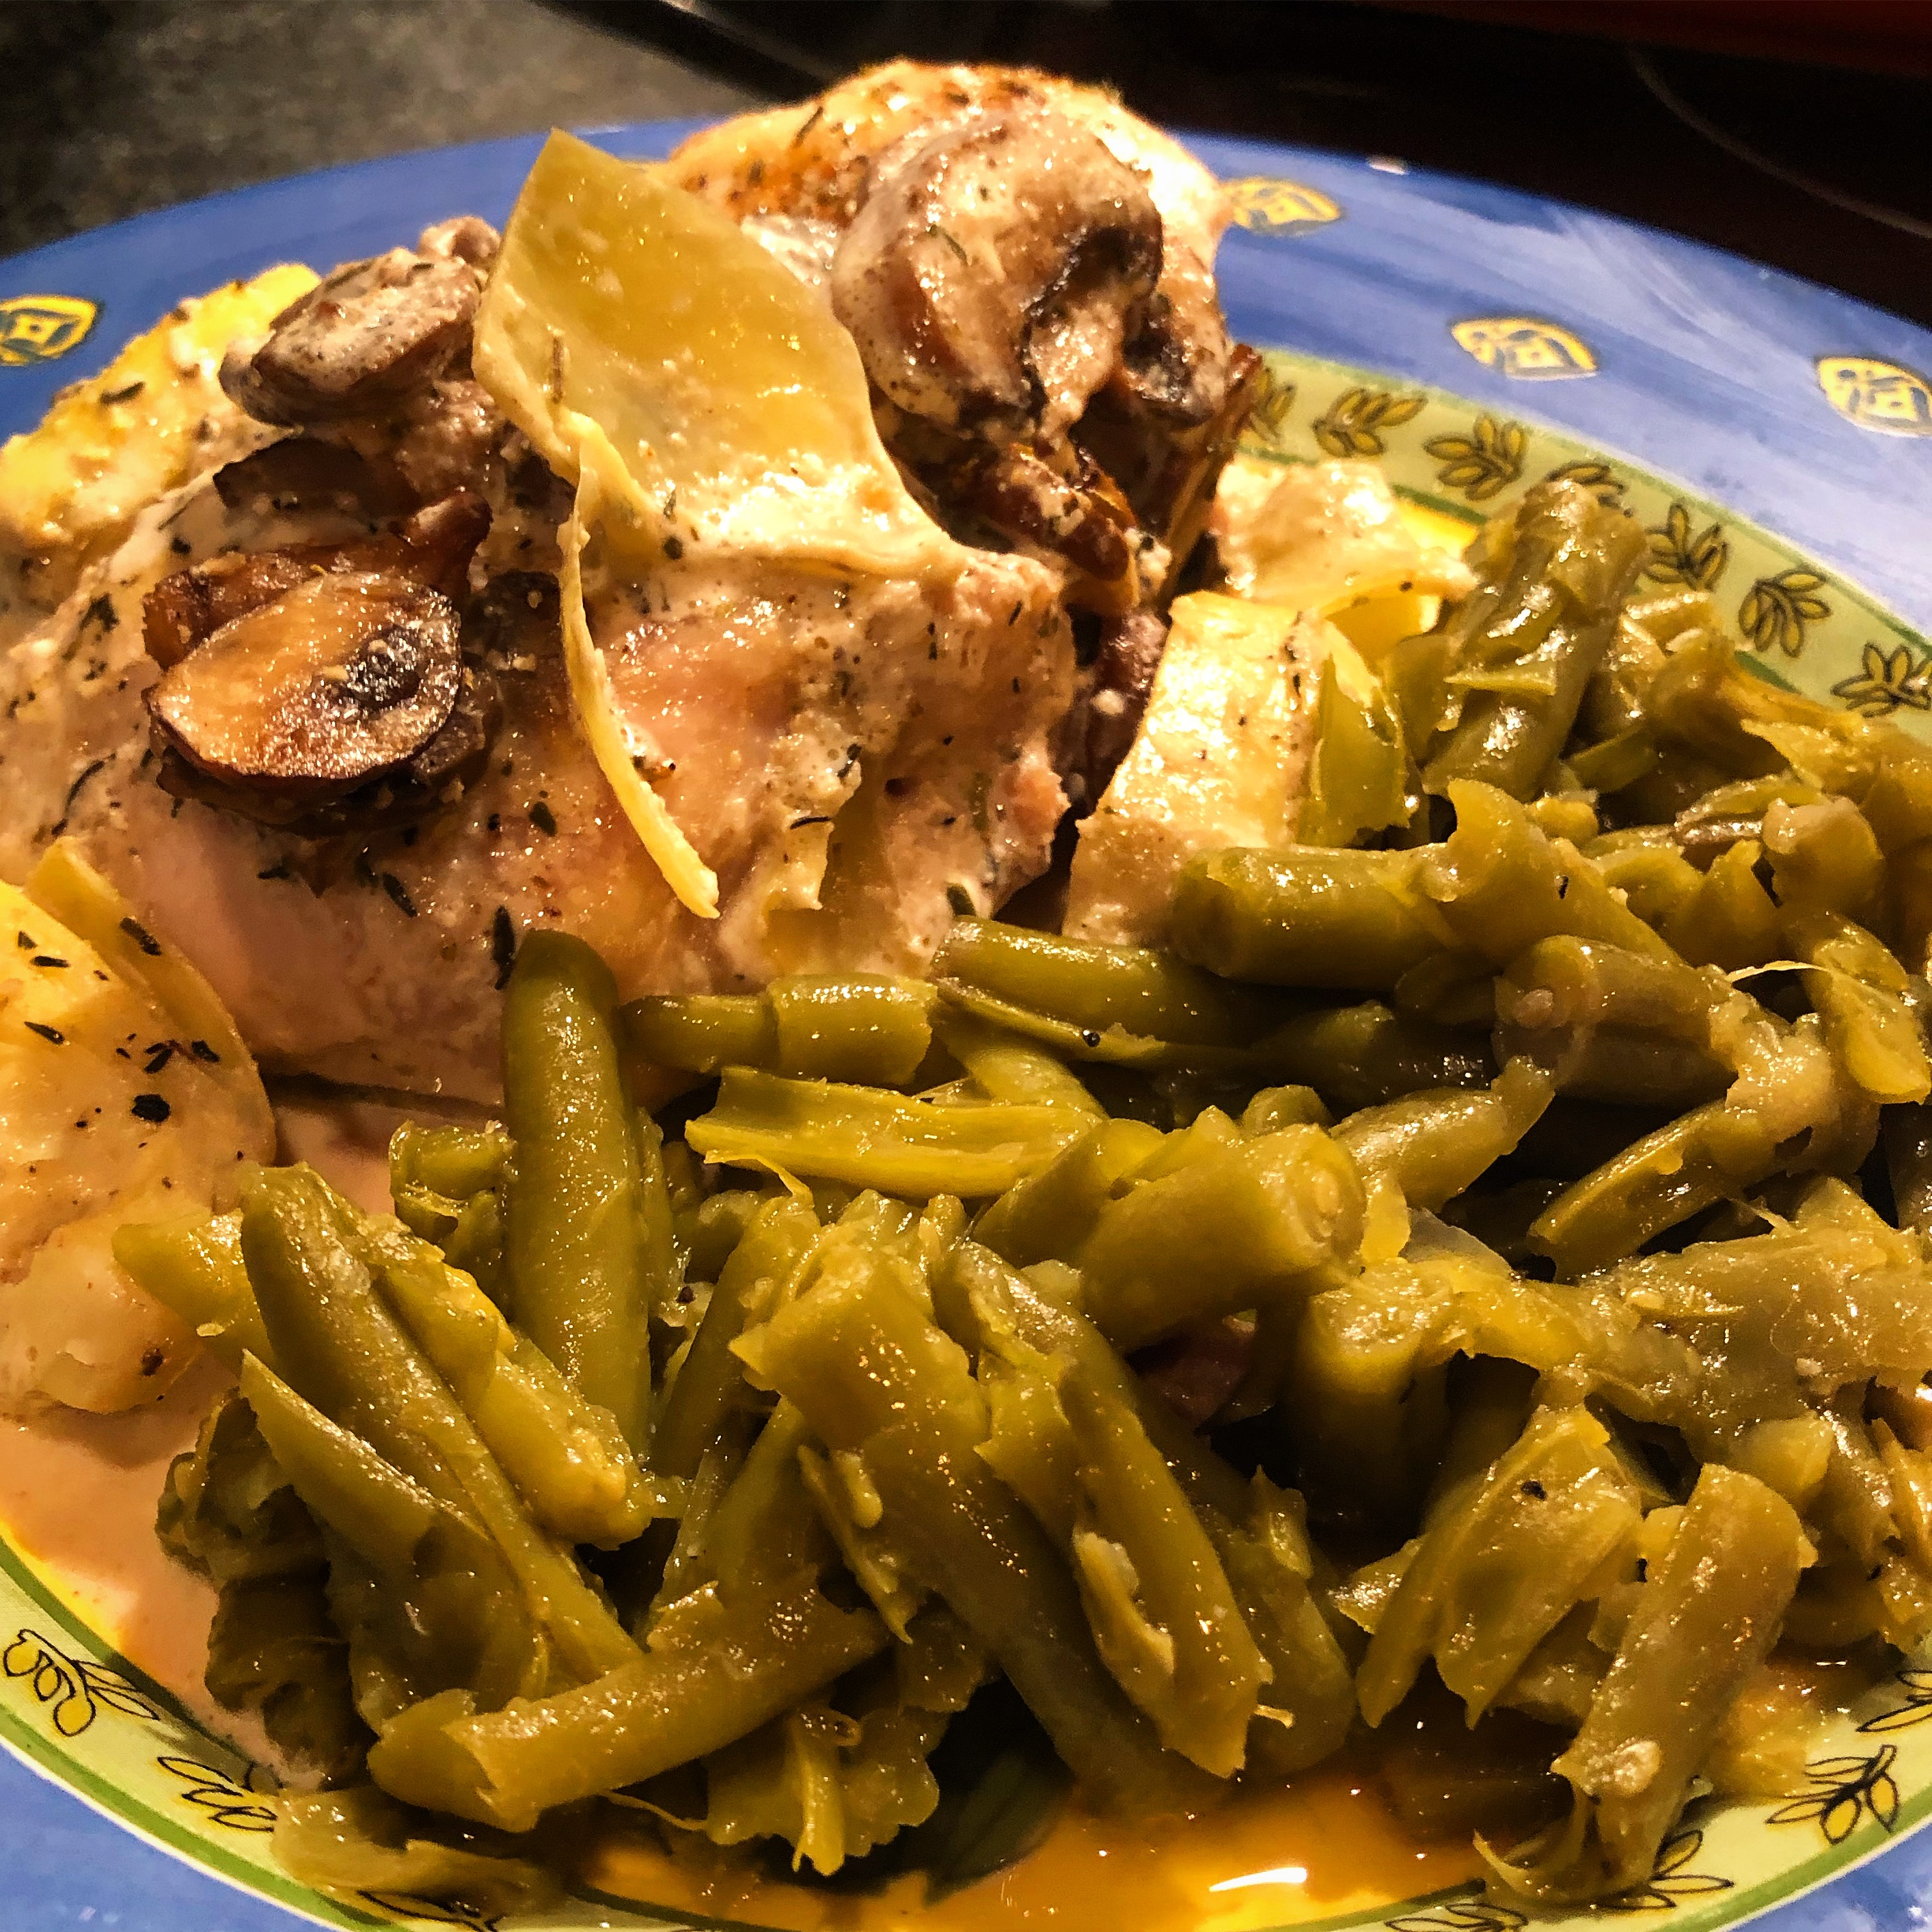 Baked Chickenwith Mushroom Asparagus Cream from Blue Dog Farm